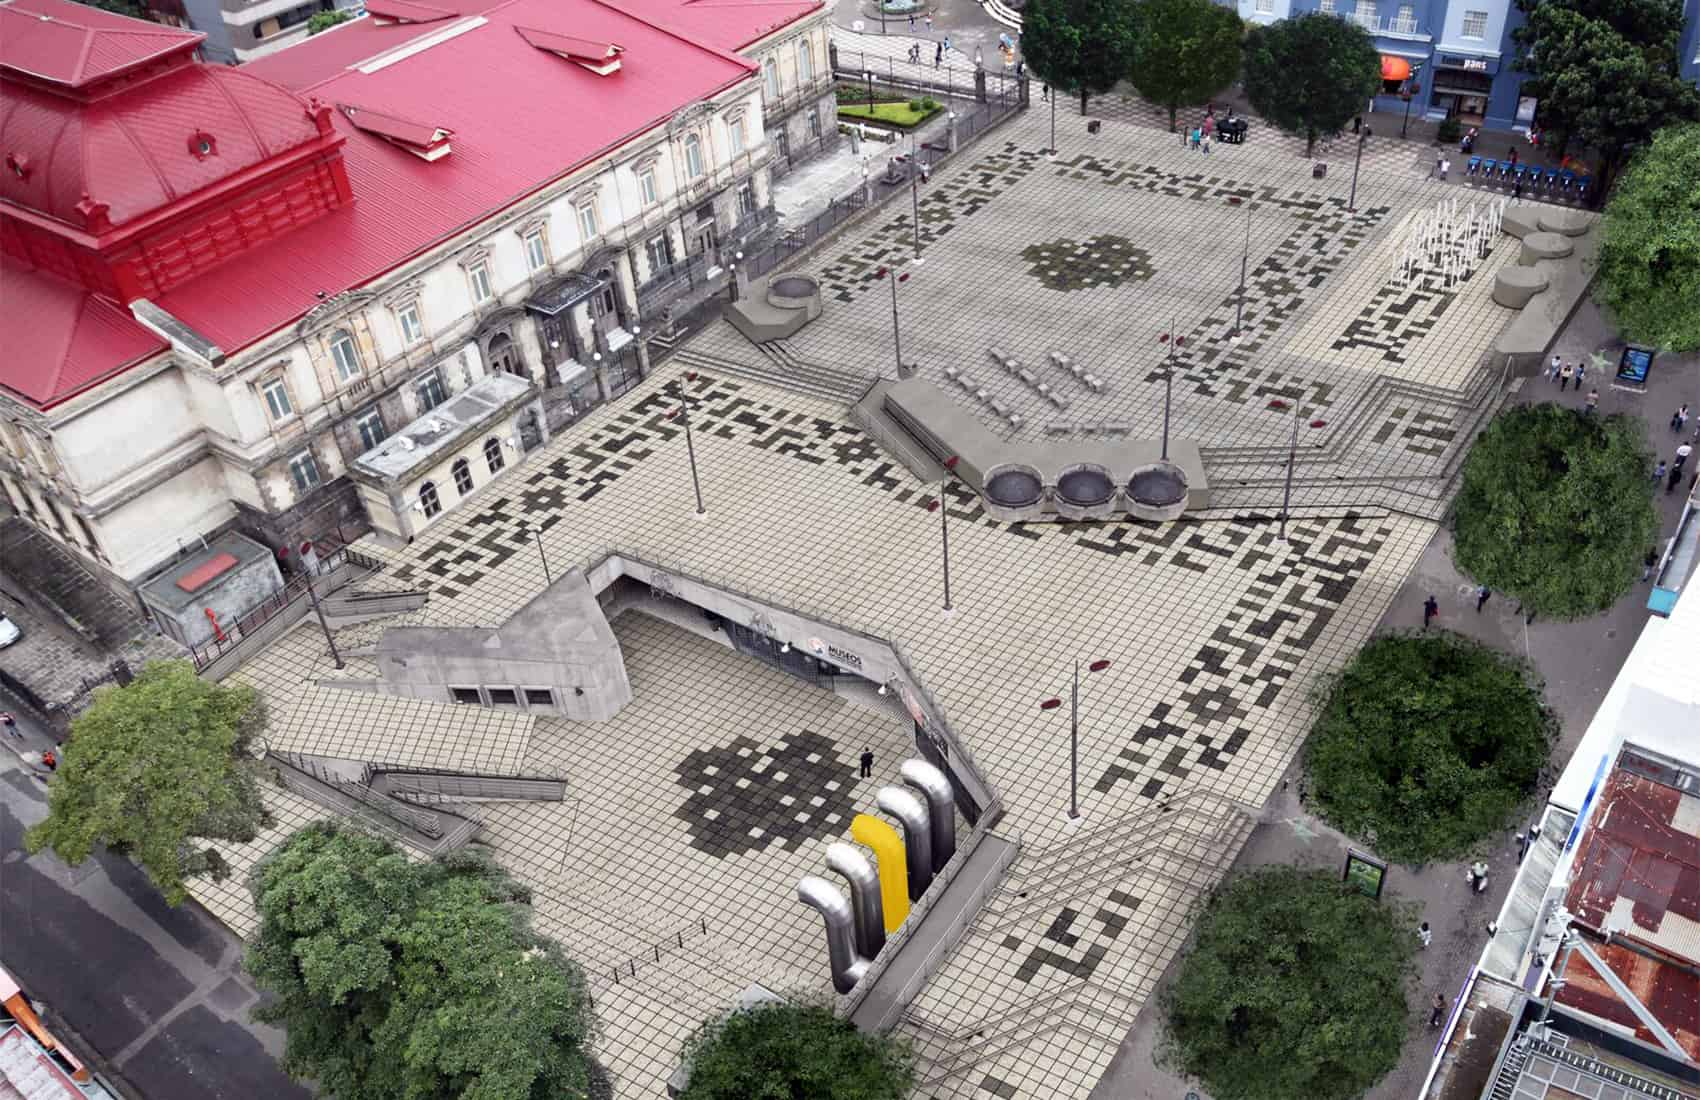 Plaza de la Cultura renovation, plan render. April, 2016.